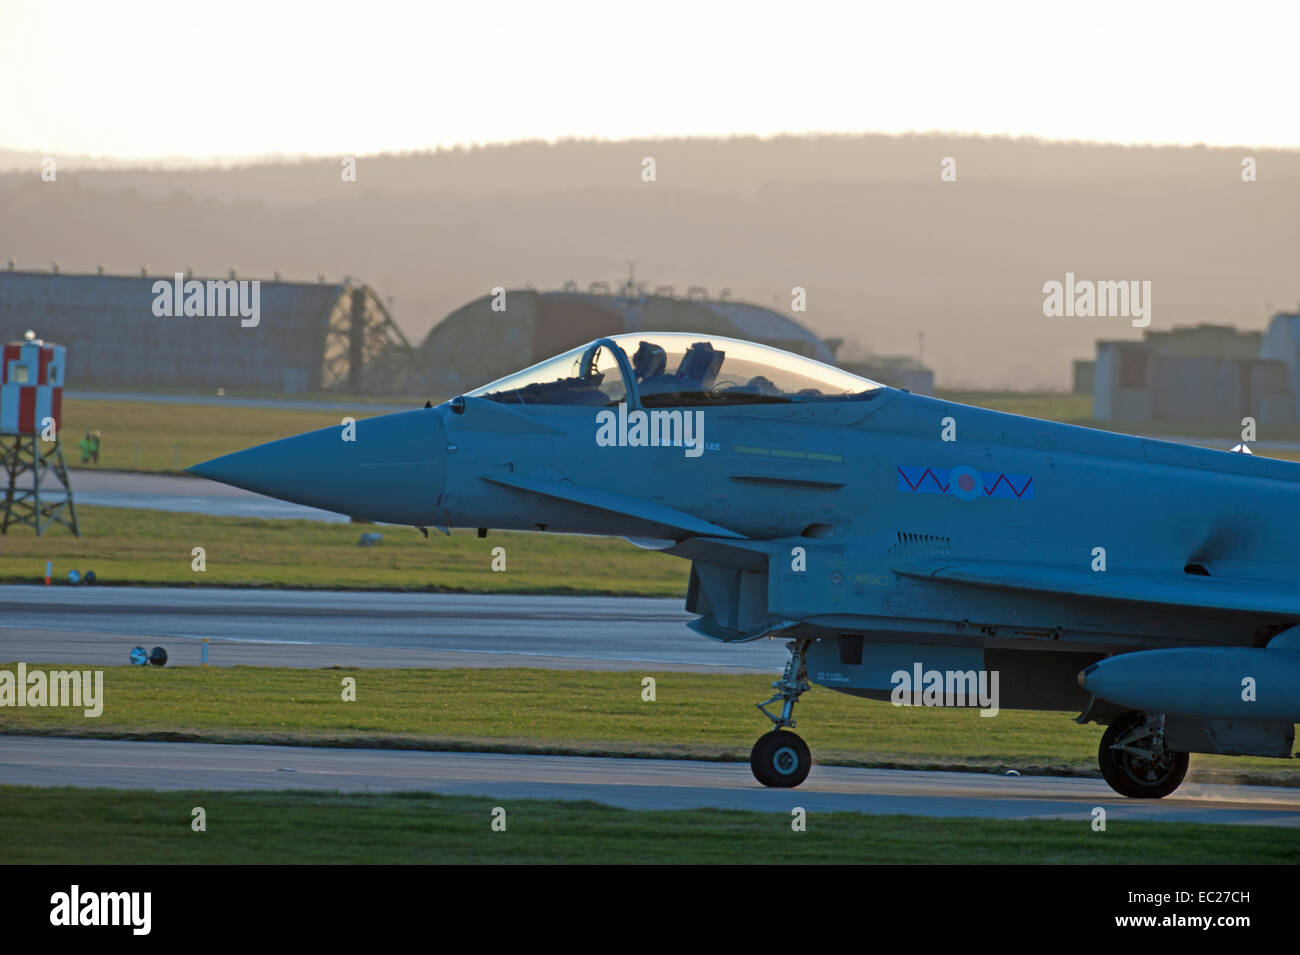 RAF Military All weather Eurofighter Typhoon FRG4 taxing on airfield runway.  SCO 9297 - Stock Image